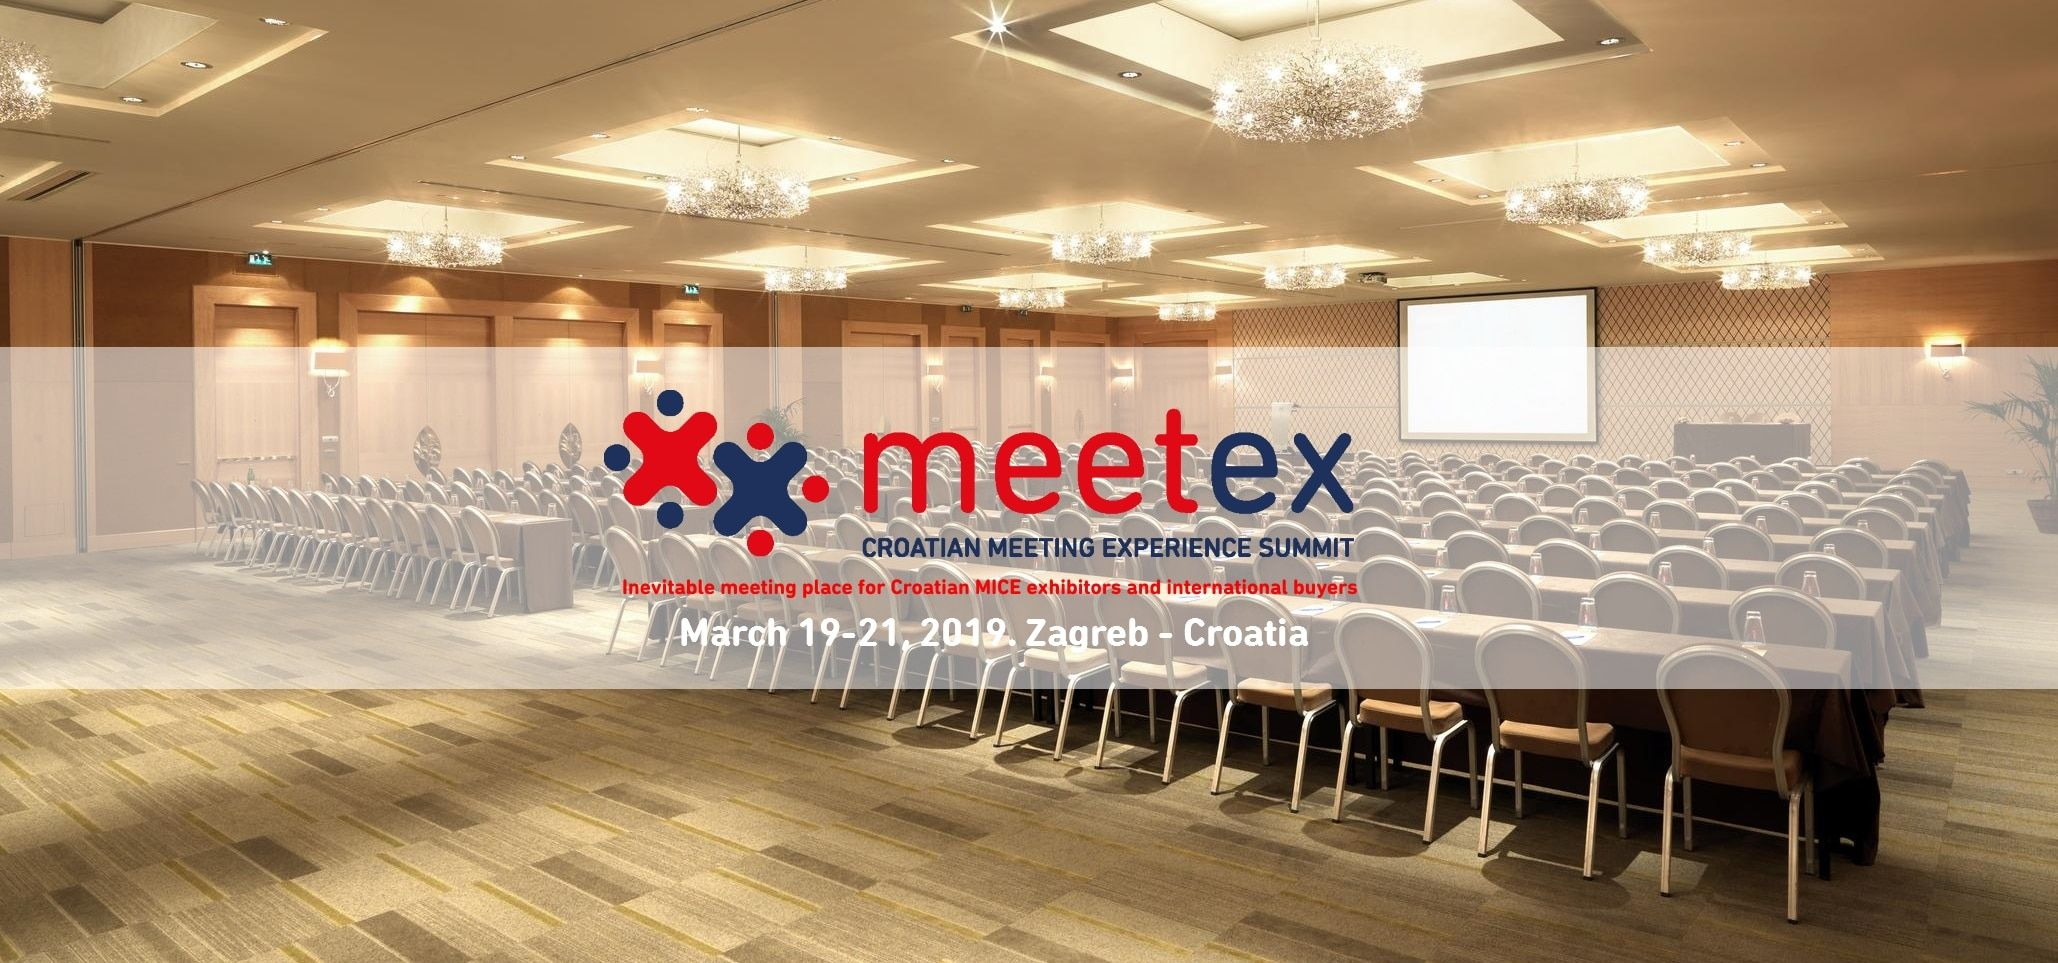 Meetex The First Ever B2b Croatian Meeting Industry Trade Show Kongres Europe Events And Meetings Industry Magazine